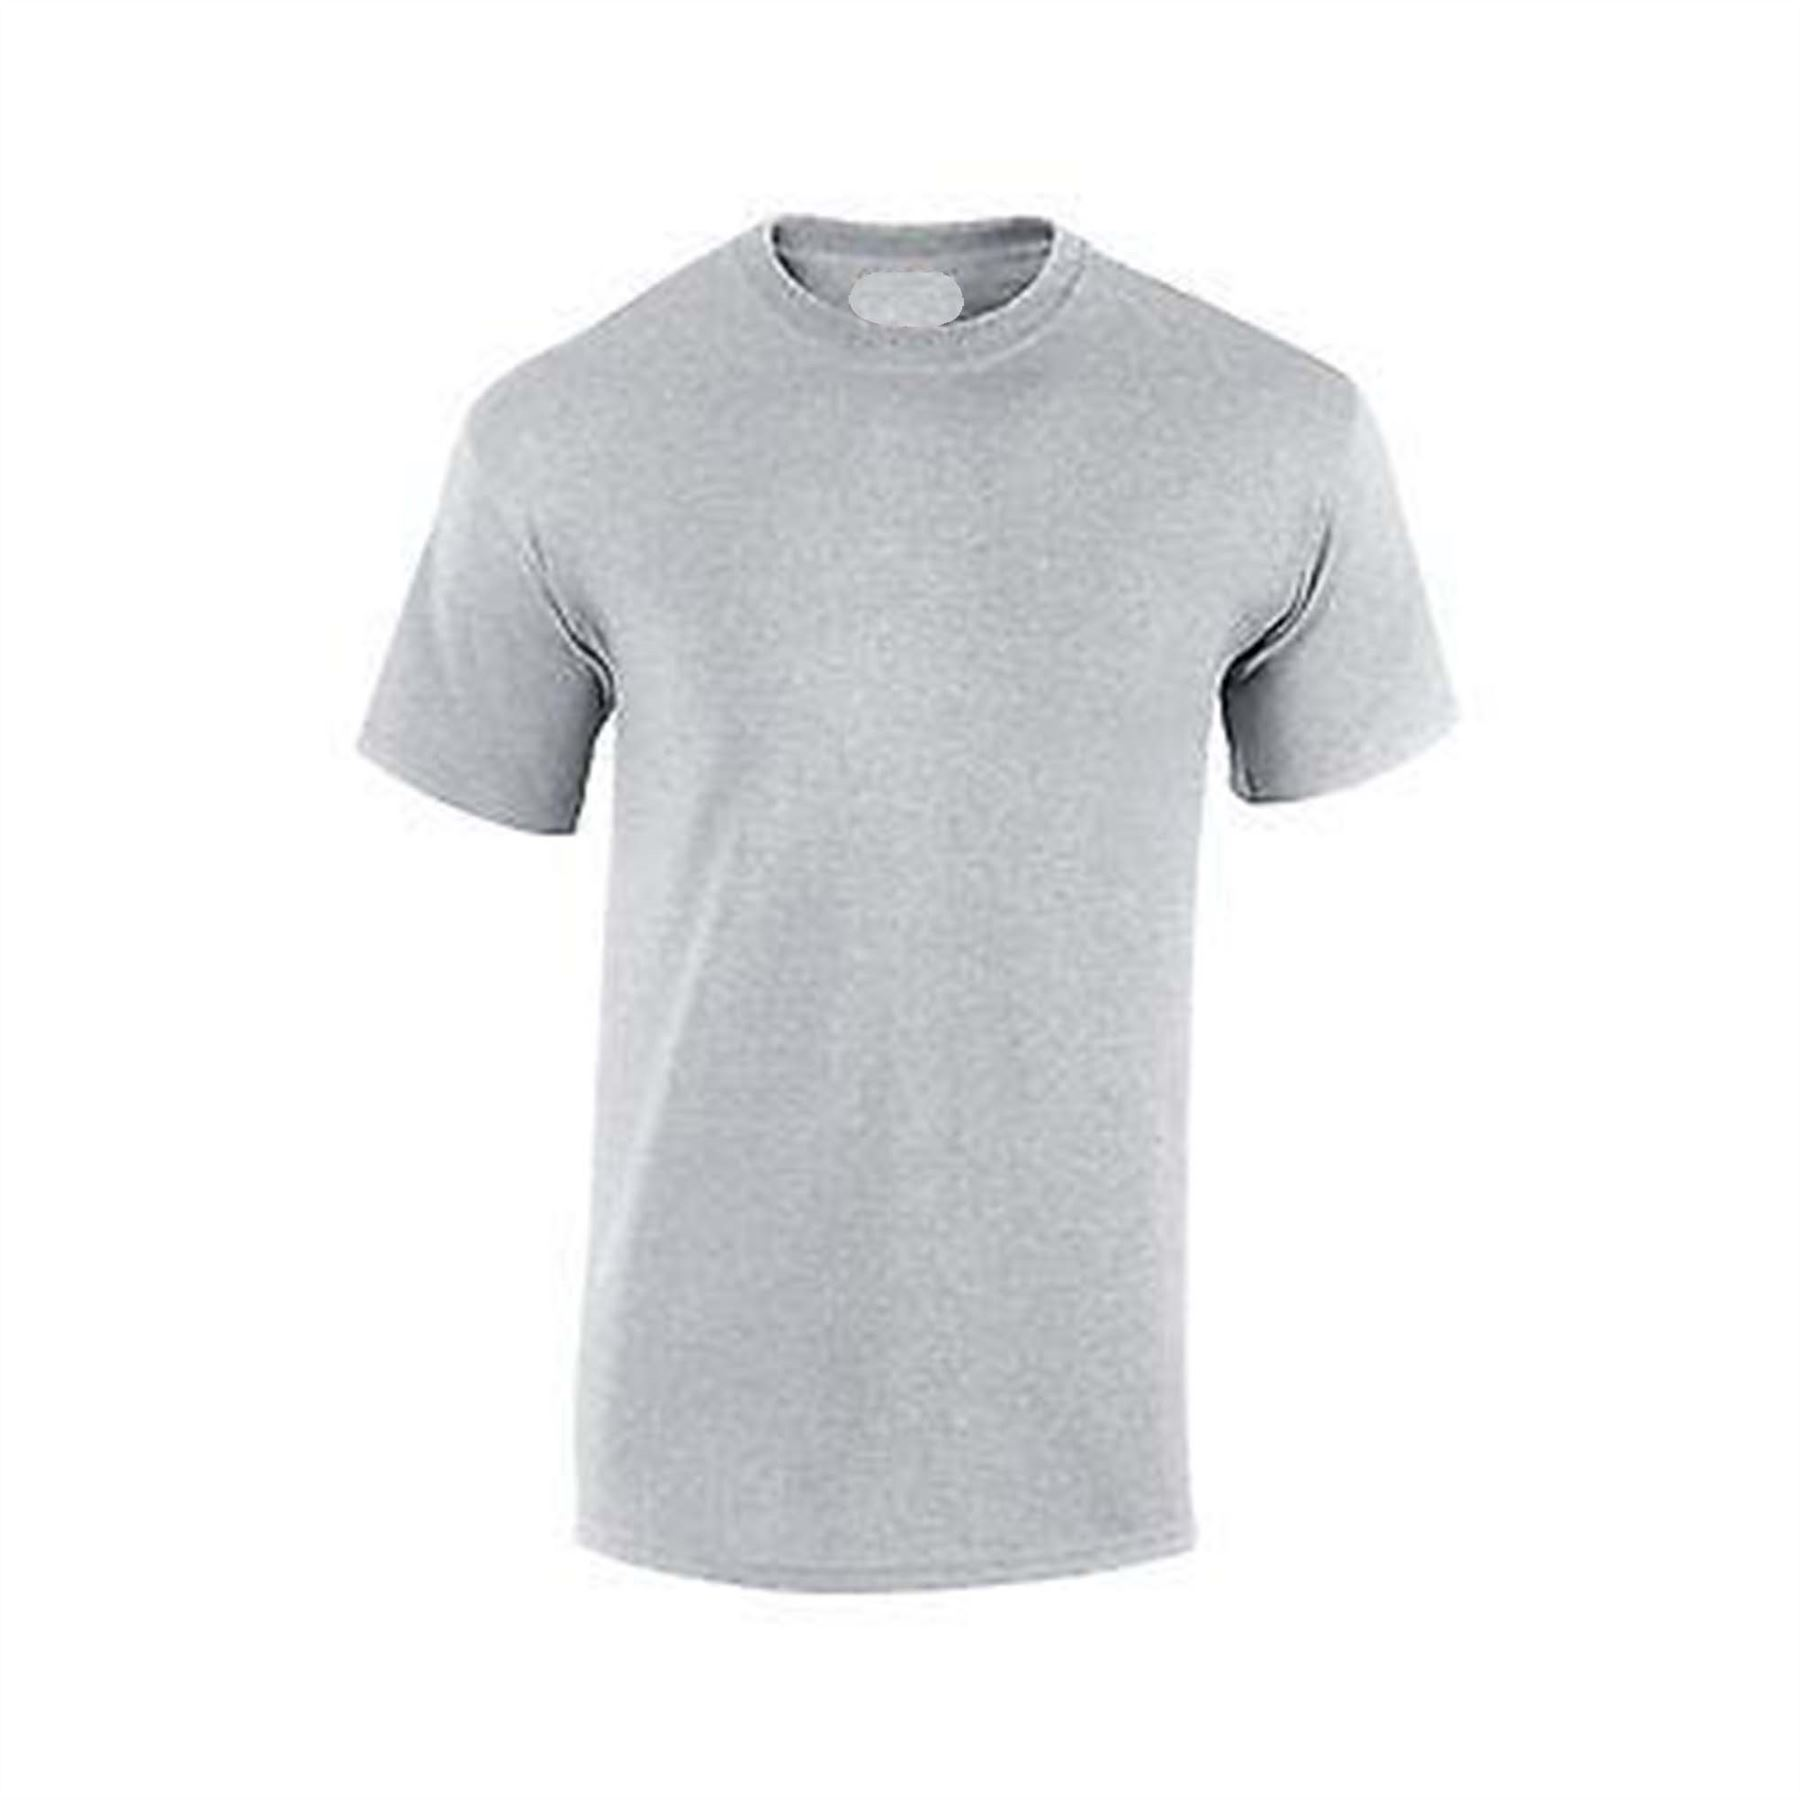 T shirt white blank - New Mens Polo Shirts Men 039 S Summer